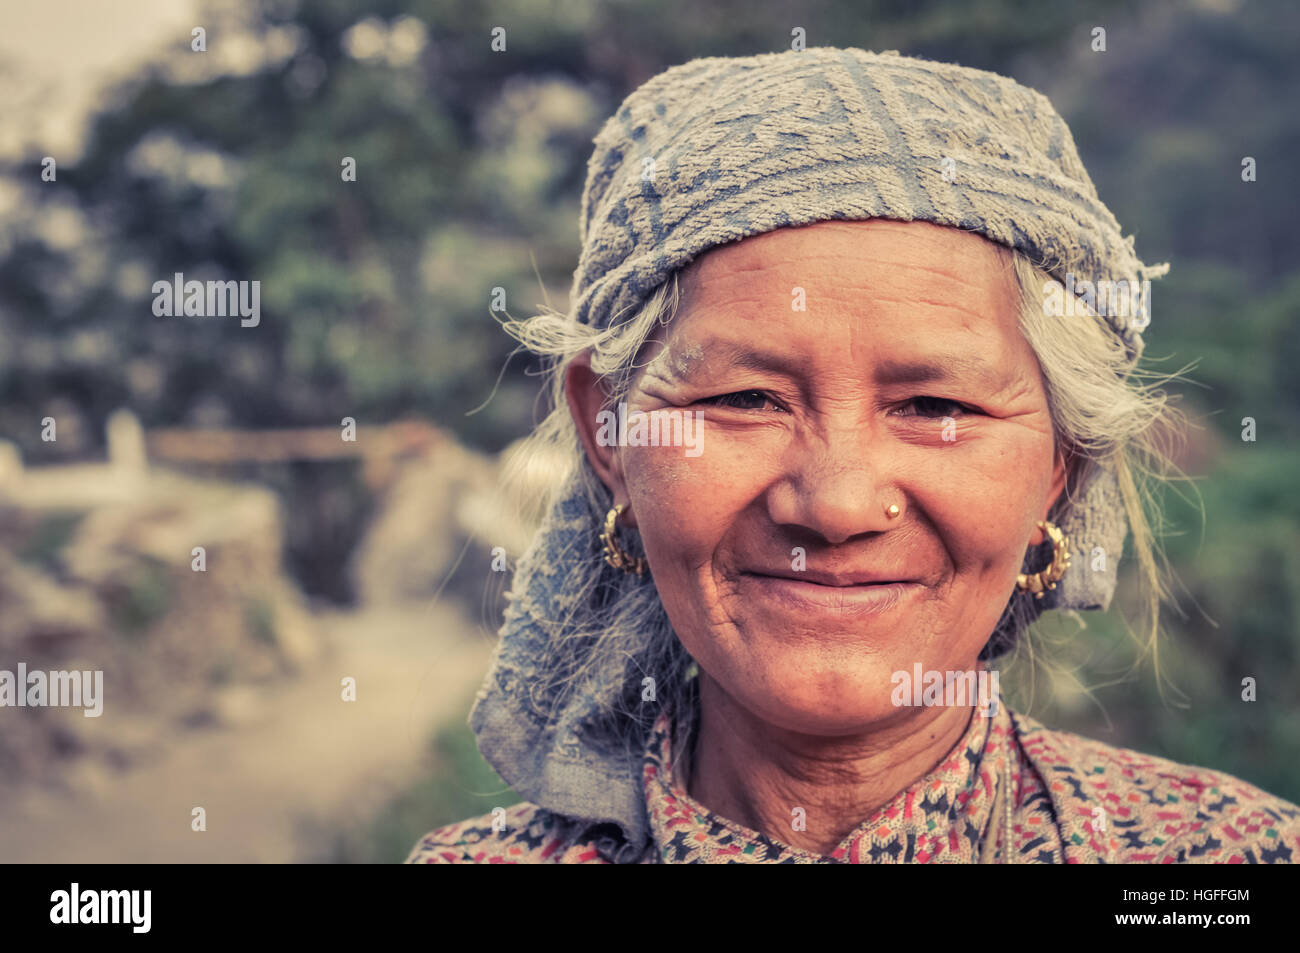 Beni, Nepal - circa May 2012: Native grey-haired woman with headcloth and golden earrings and piercing smiles nicely - Stock Image